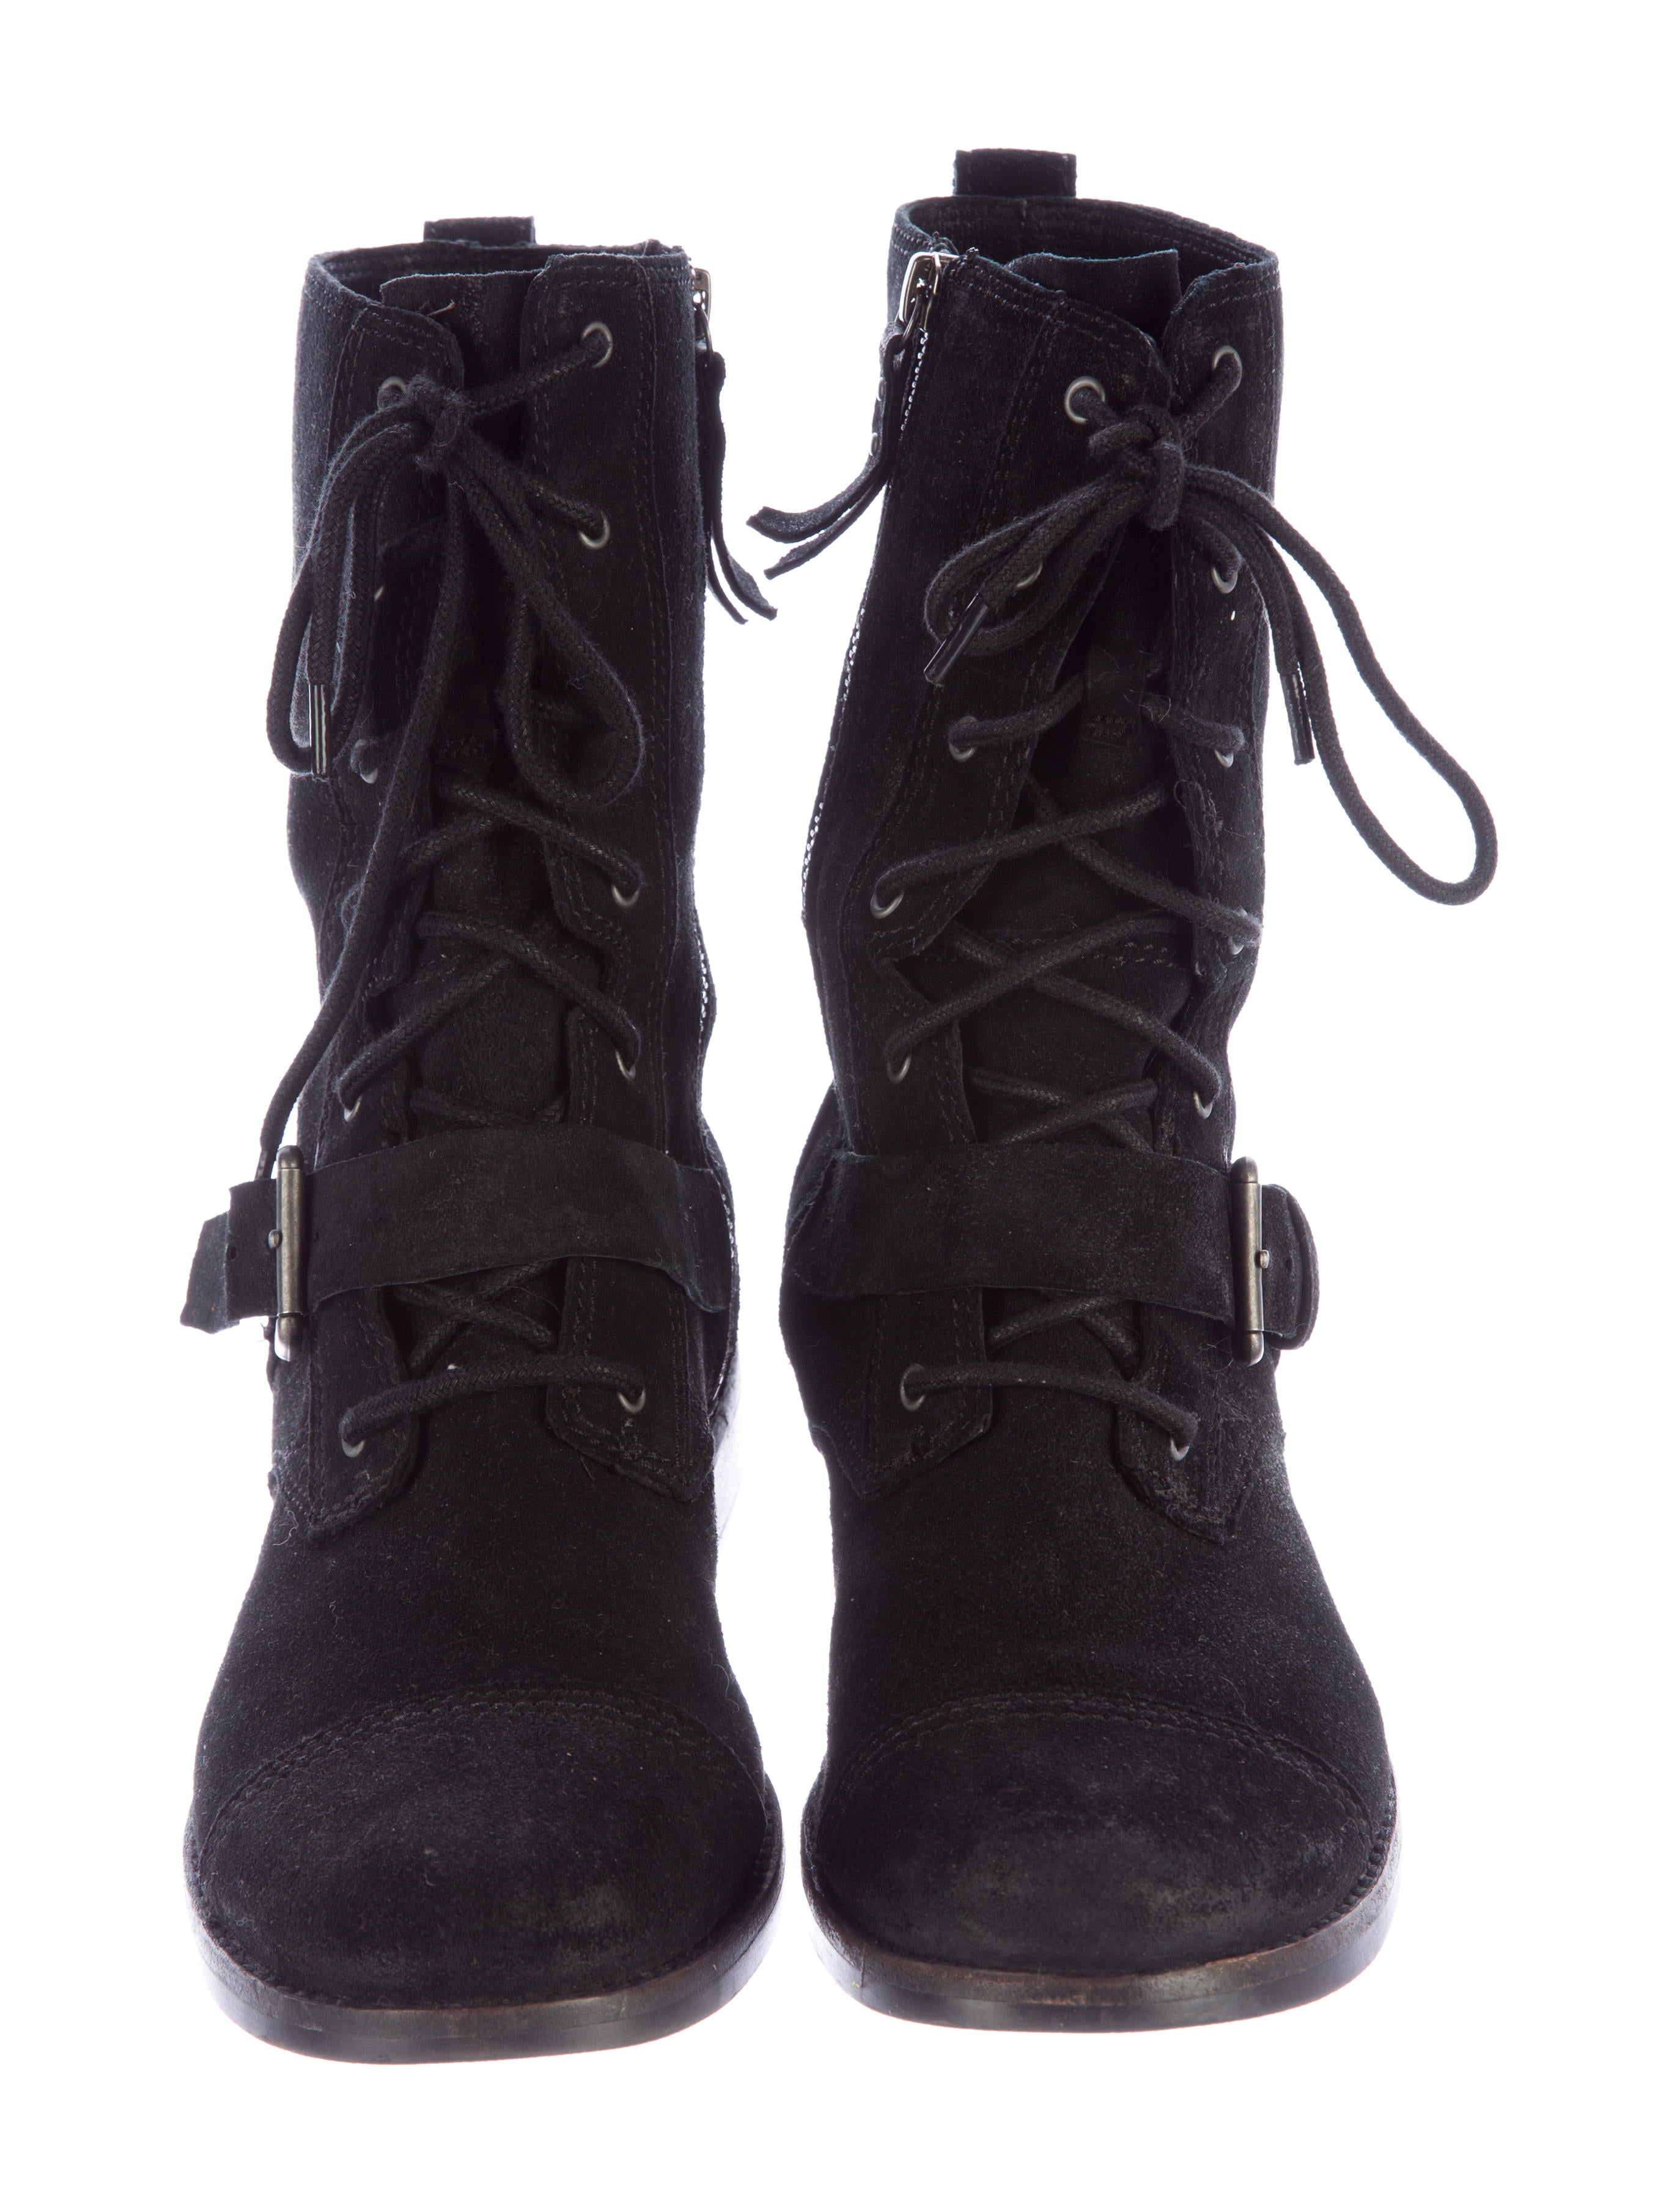 vip7fps.tk: suede ankle boots flat. From The Community. Amazon Try Prime All Women Ankle Boots Flat Fashion Suede Lace-up Martin Combat Boots. by Hee grand. $ - $ $ 19 $ 25 out of 5 stars CIOR Women's Winter Boots Warm Suede Lace up Snow Boots Waterproof PU Shoes.